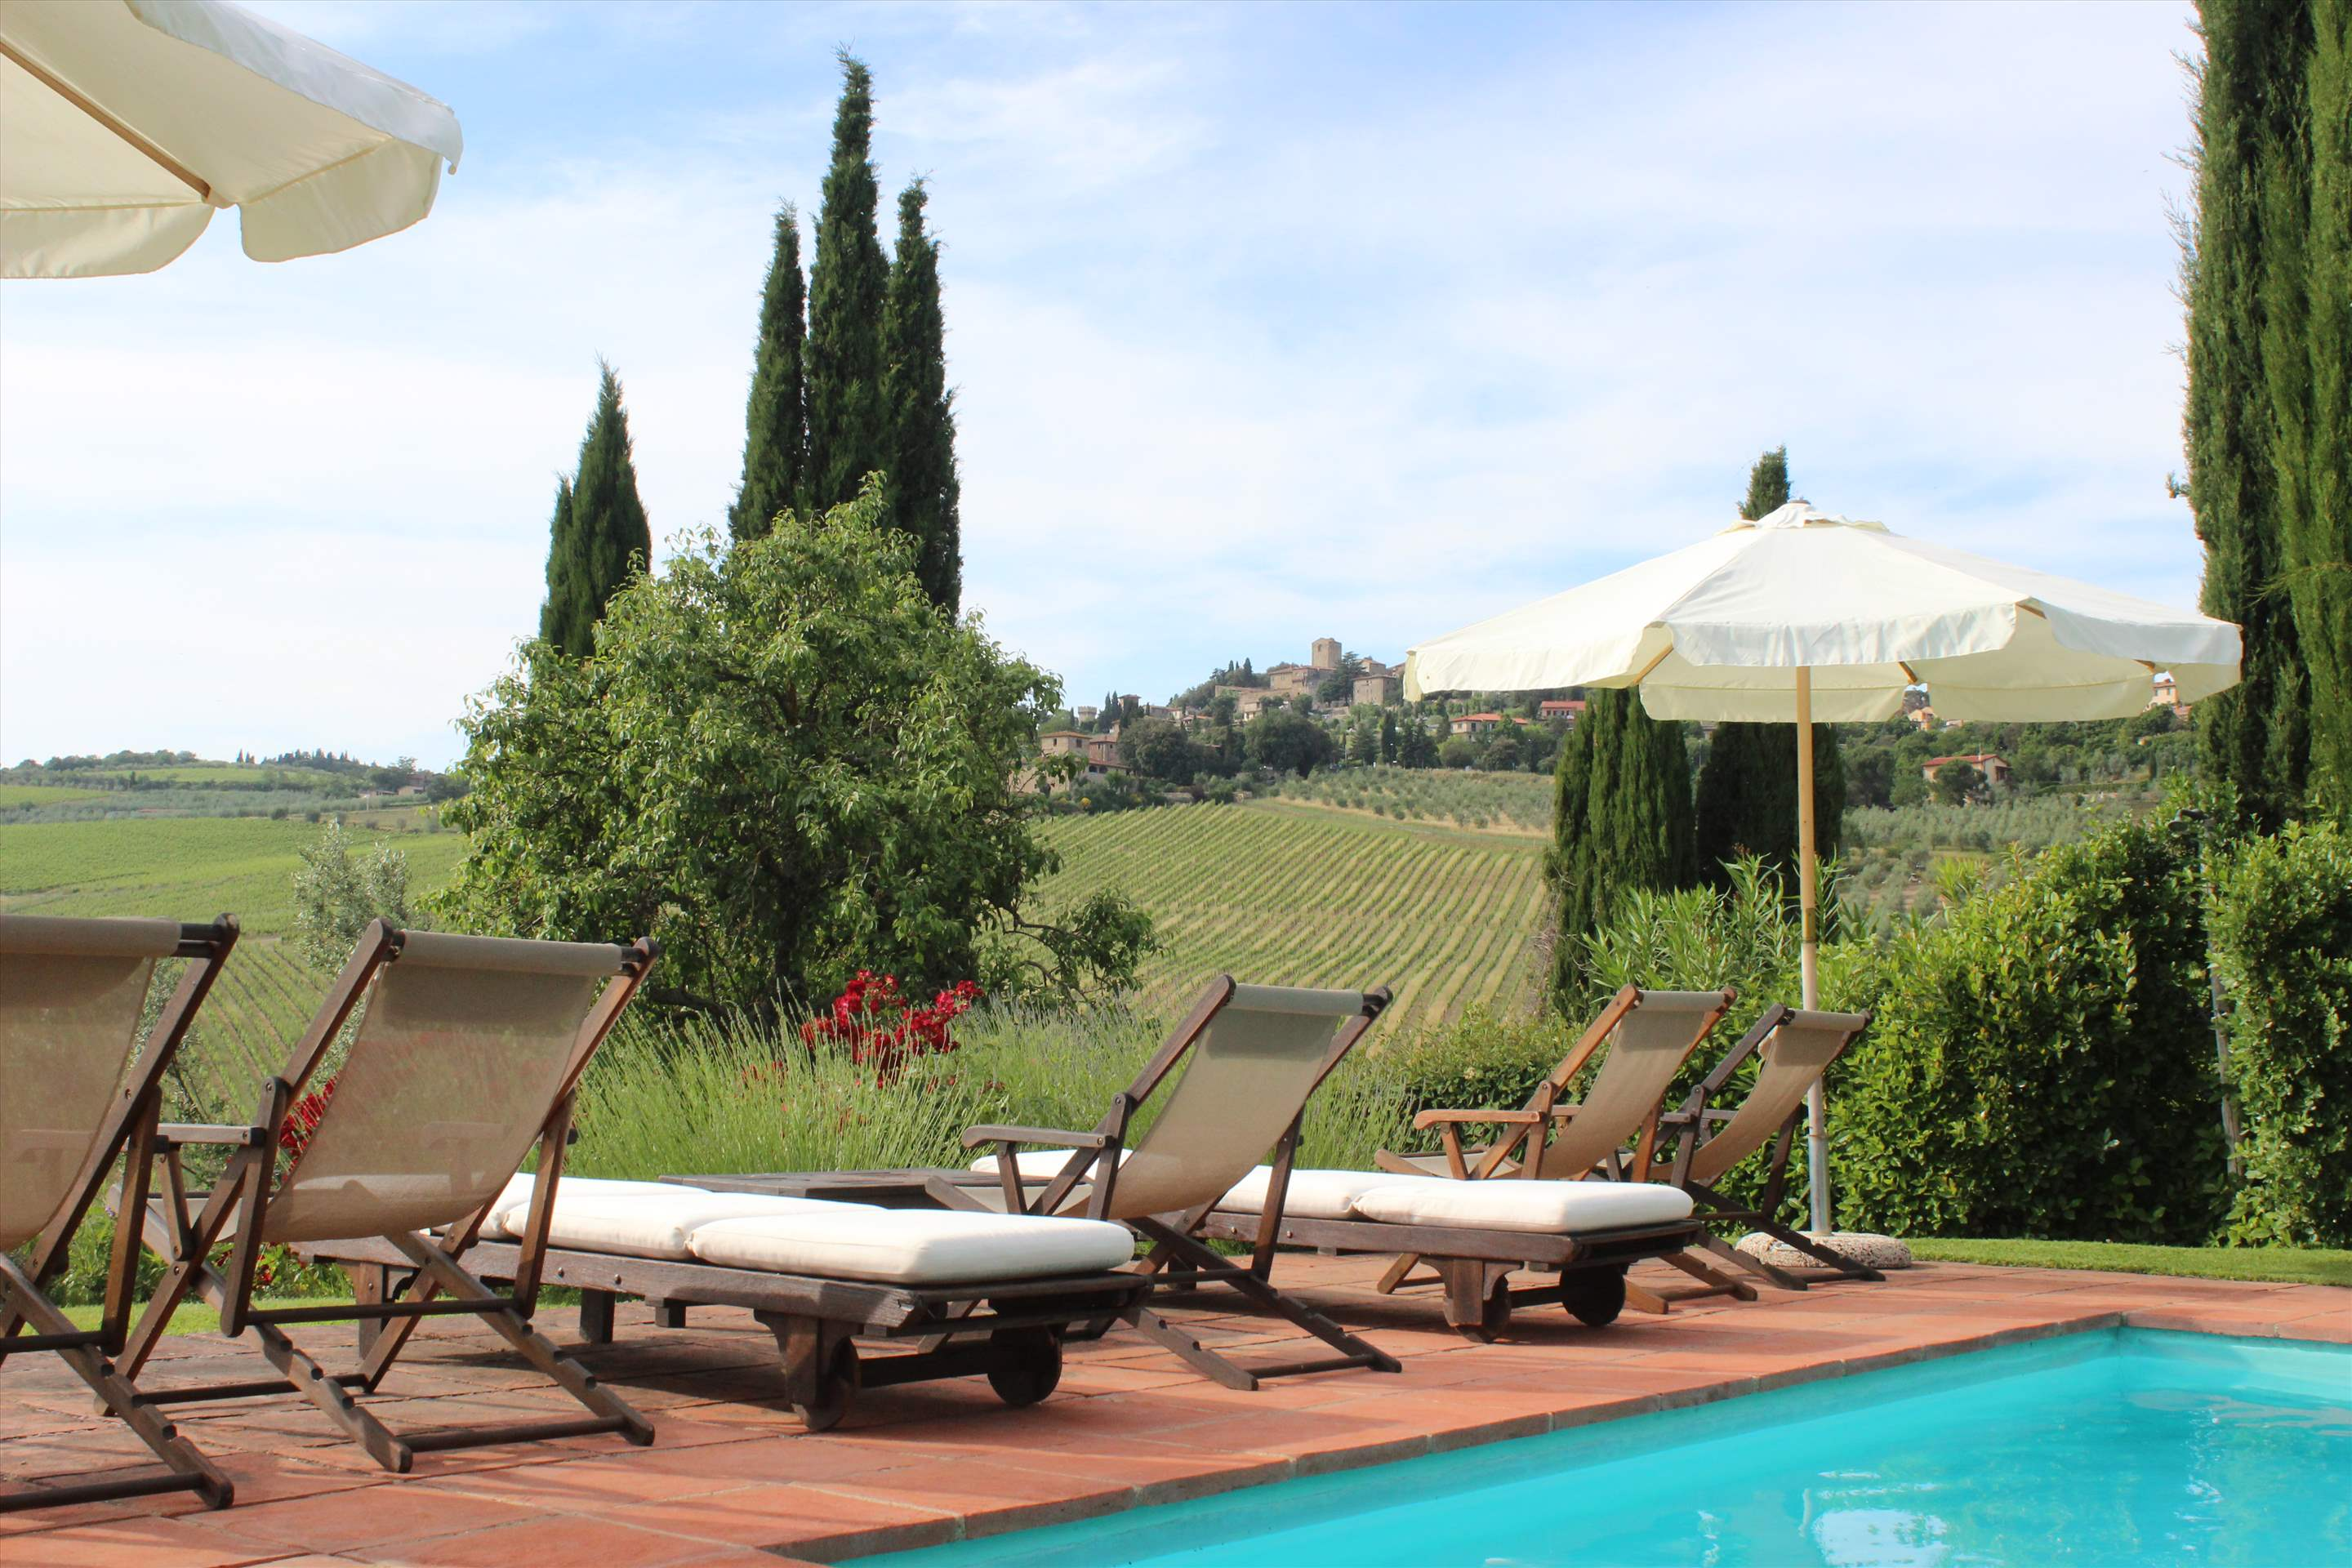 Casas Ferruzzi, 8 bedroom apartment in Chianti & Countryside, Tuscany Photo #3